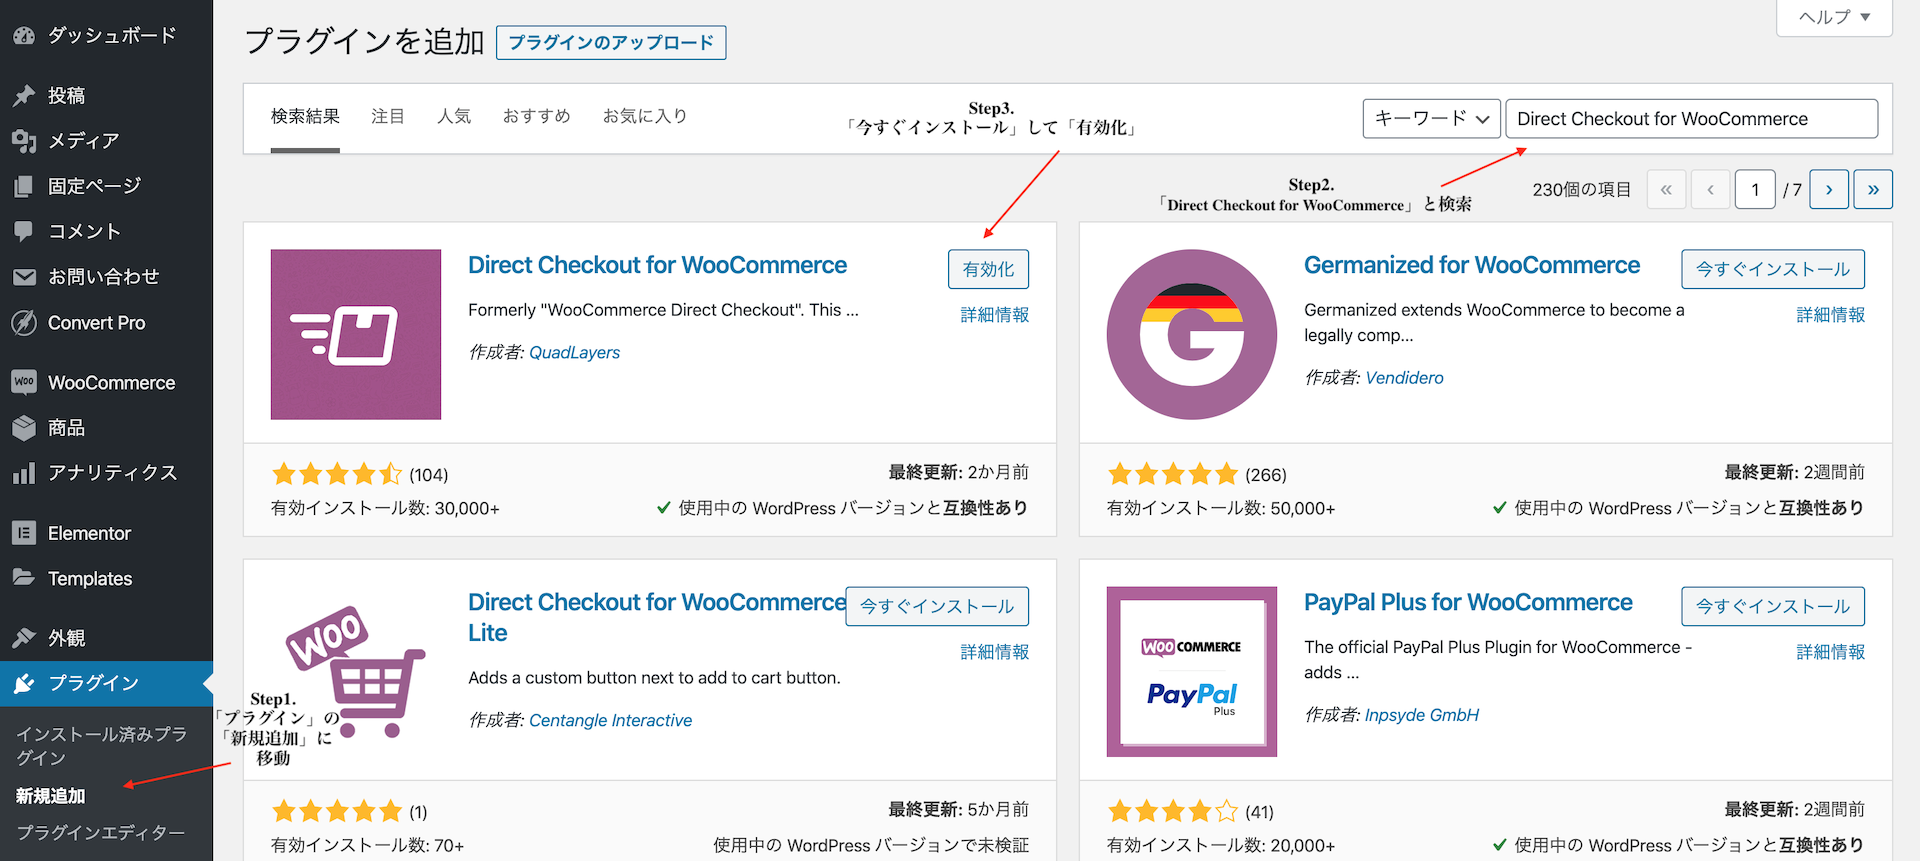 Direct Checkout for WooCommerceプラグインをインストールする